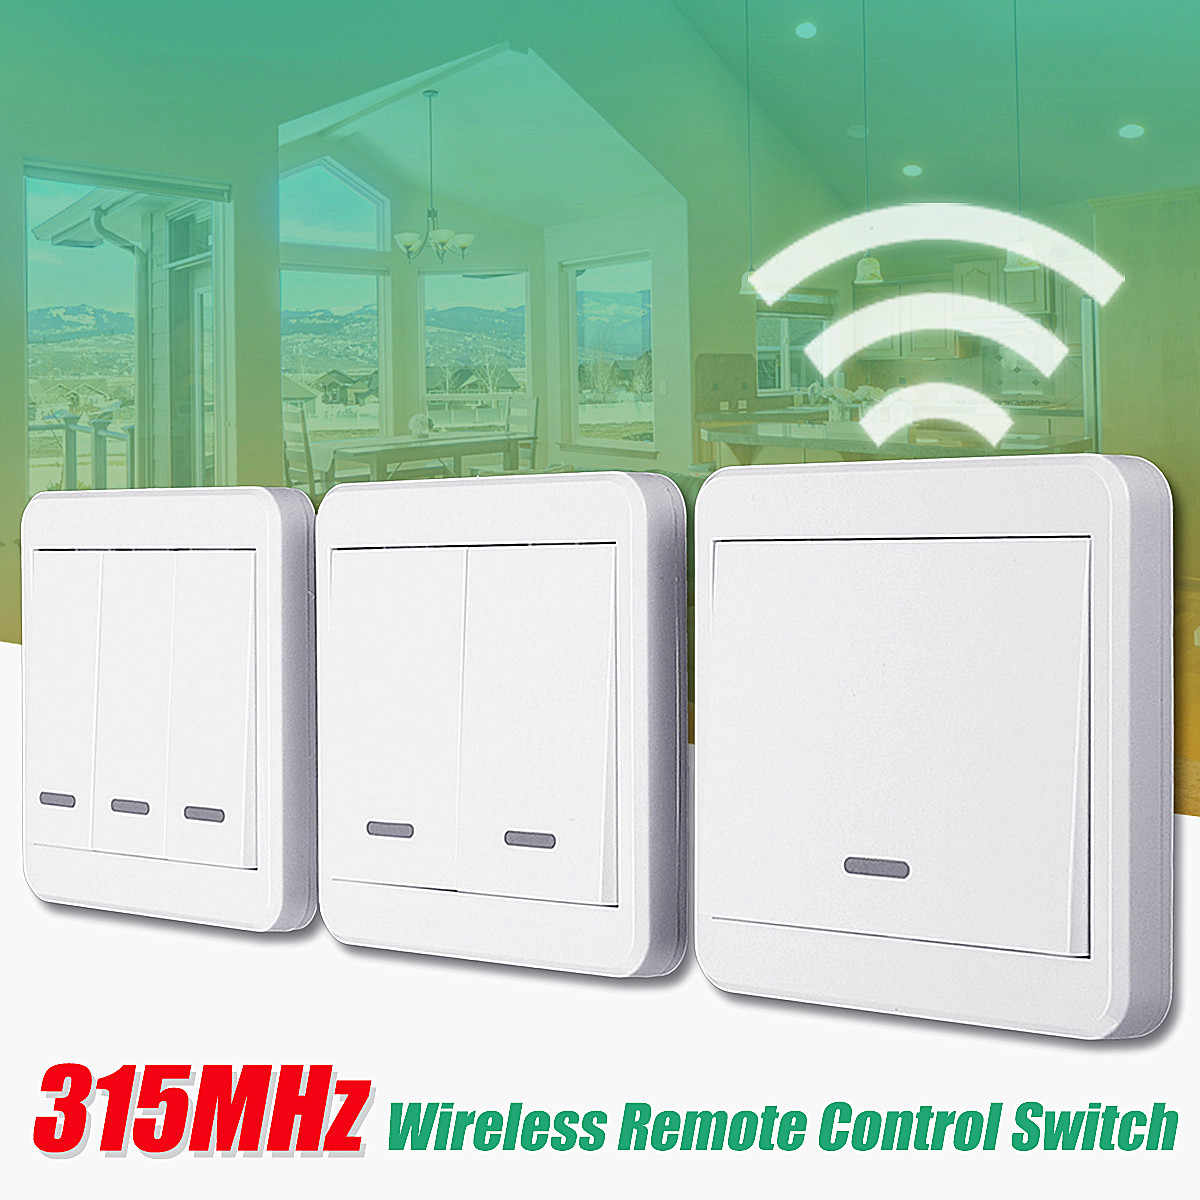 1/2/3-Way 315MHz RF Wireless Remote Control Switch 10M Wall Panel Transmitter New Arrival